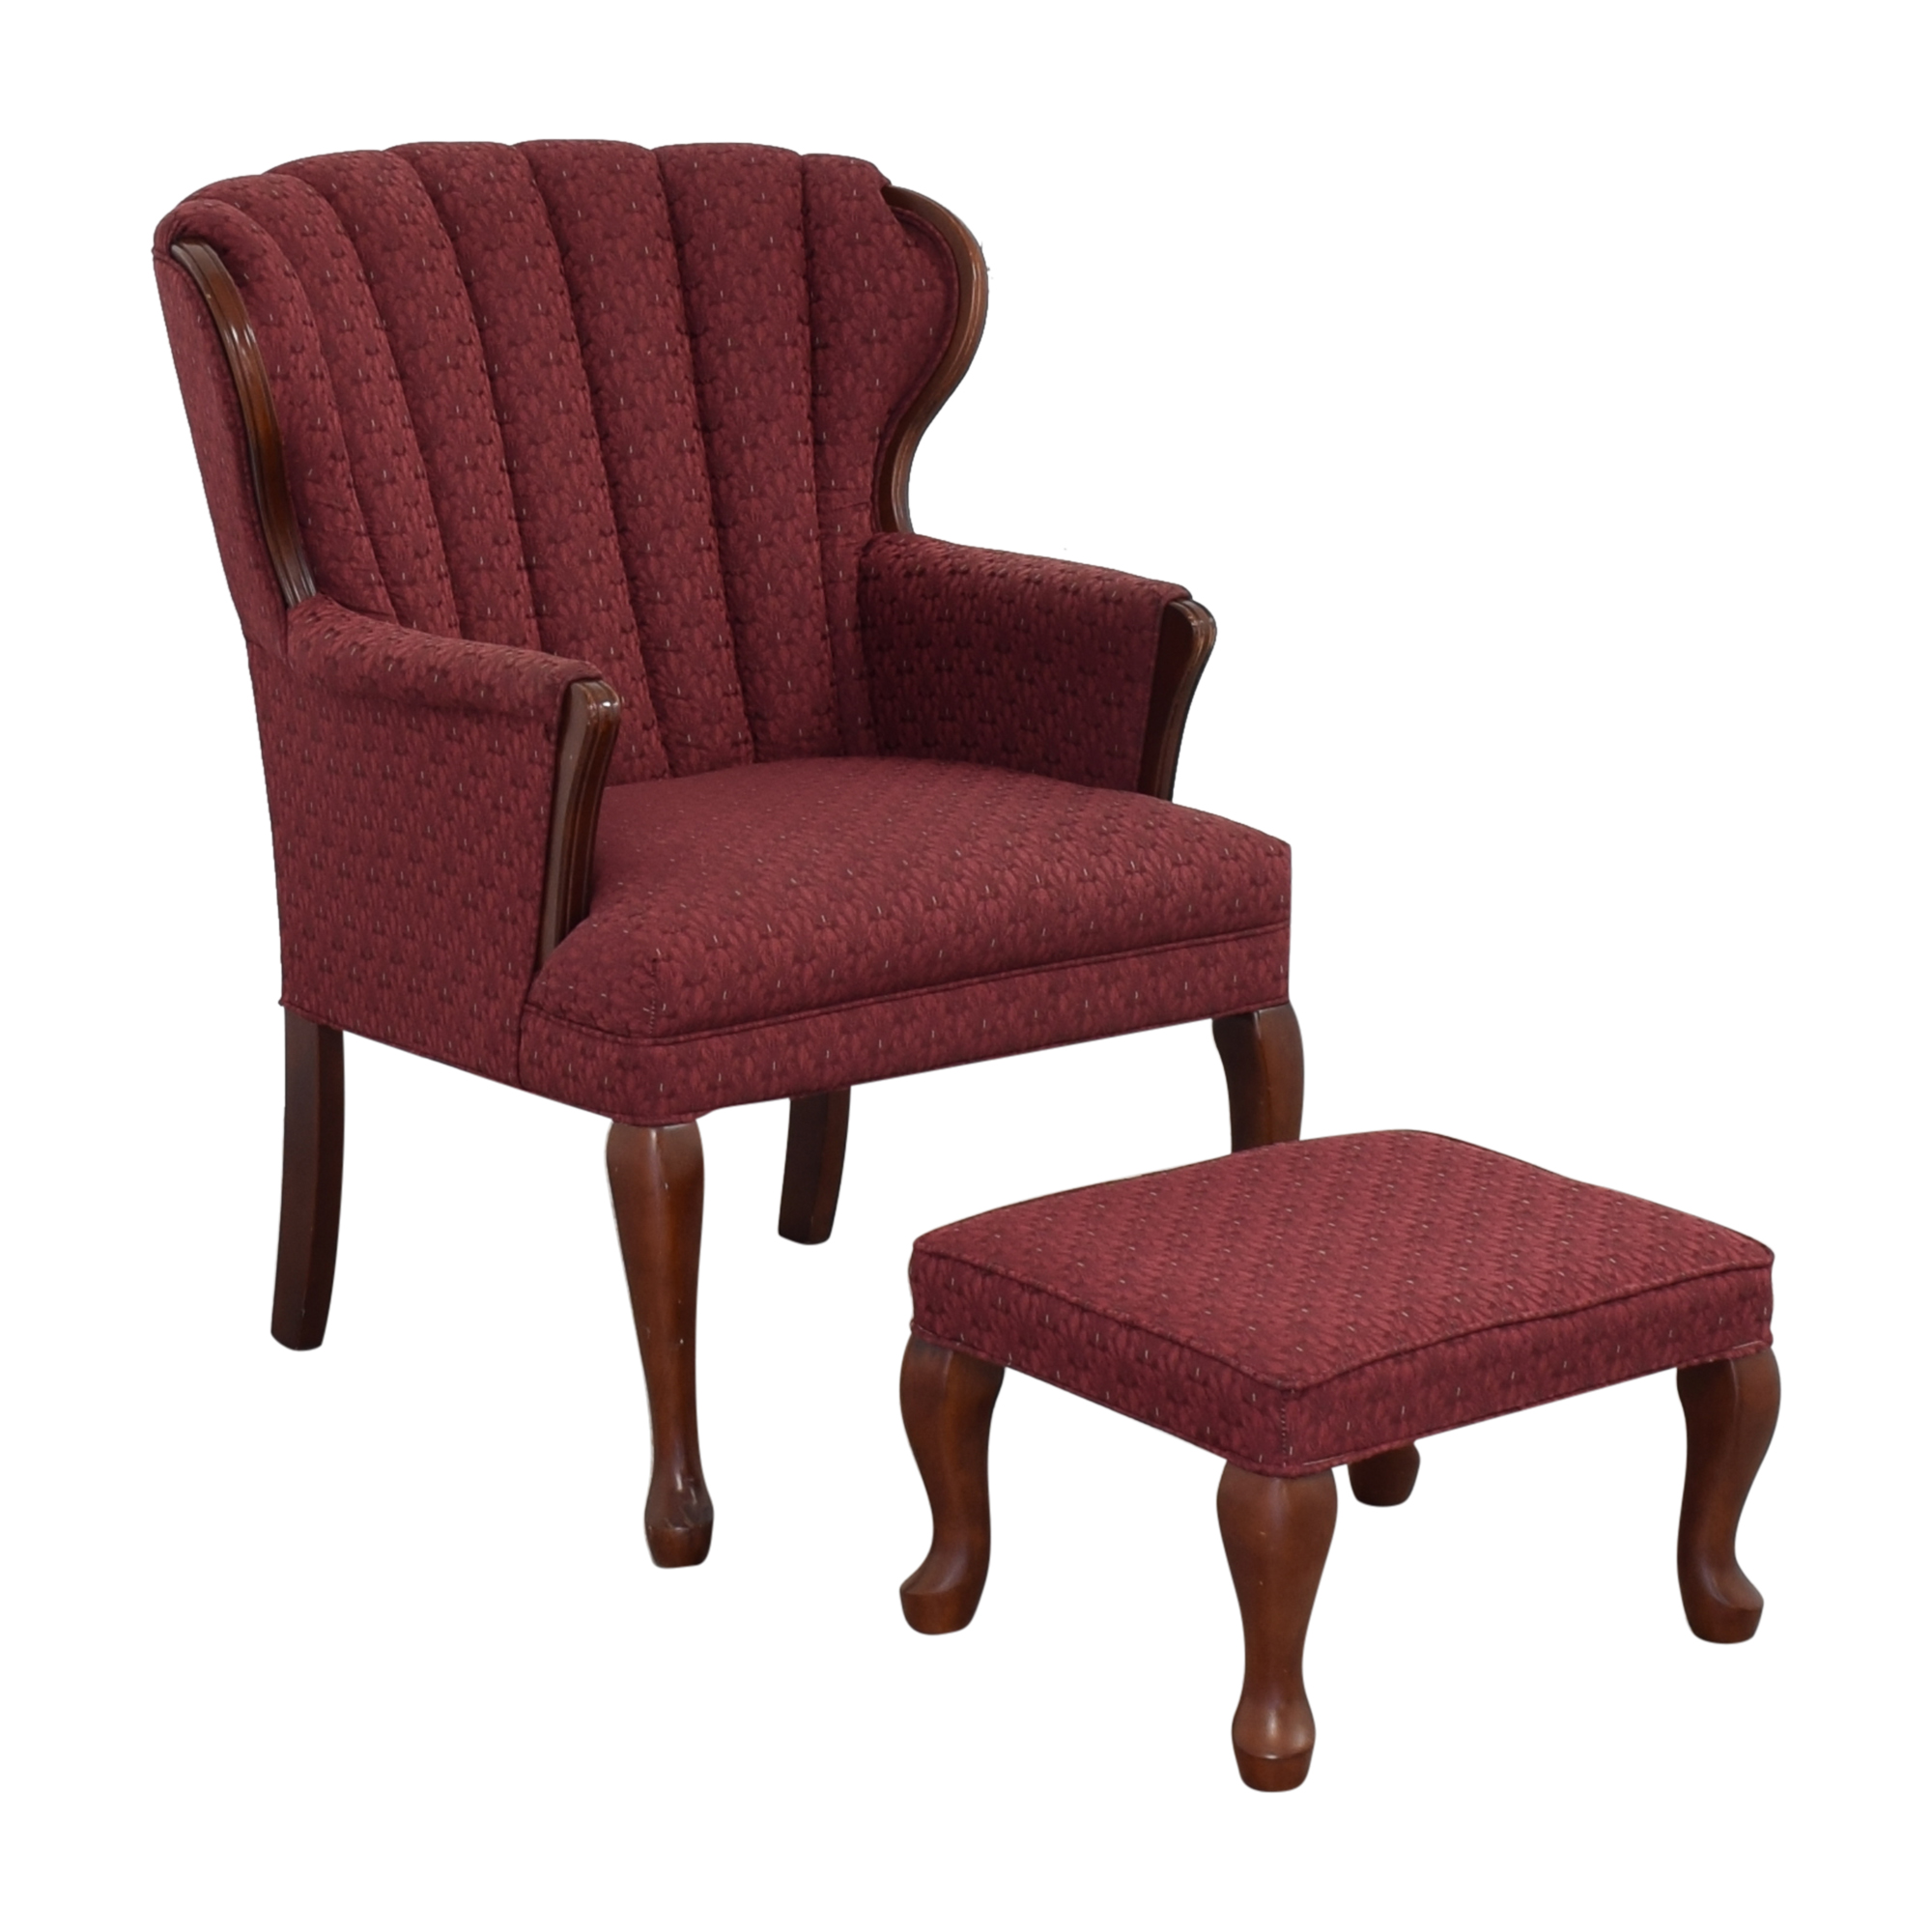 buy Best Chairs Queen Anne Scallop-Back Chair and Ottoman Best Chairs Accent Chairs